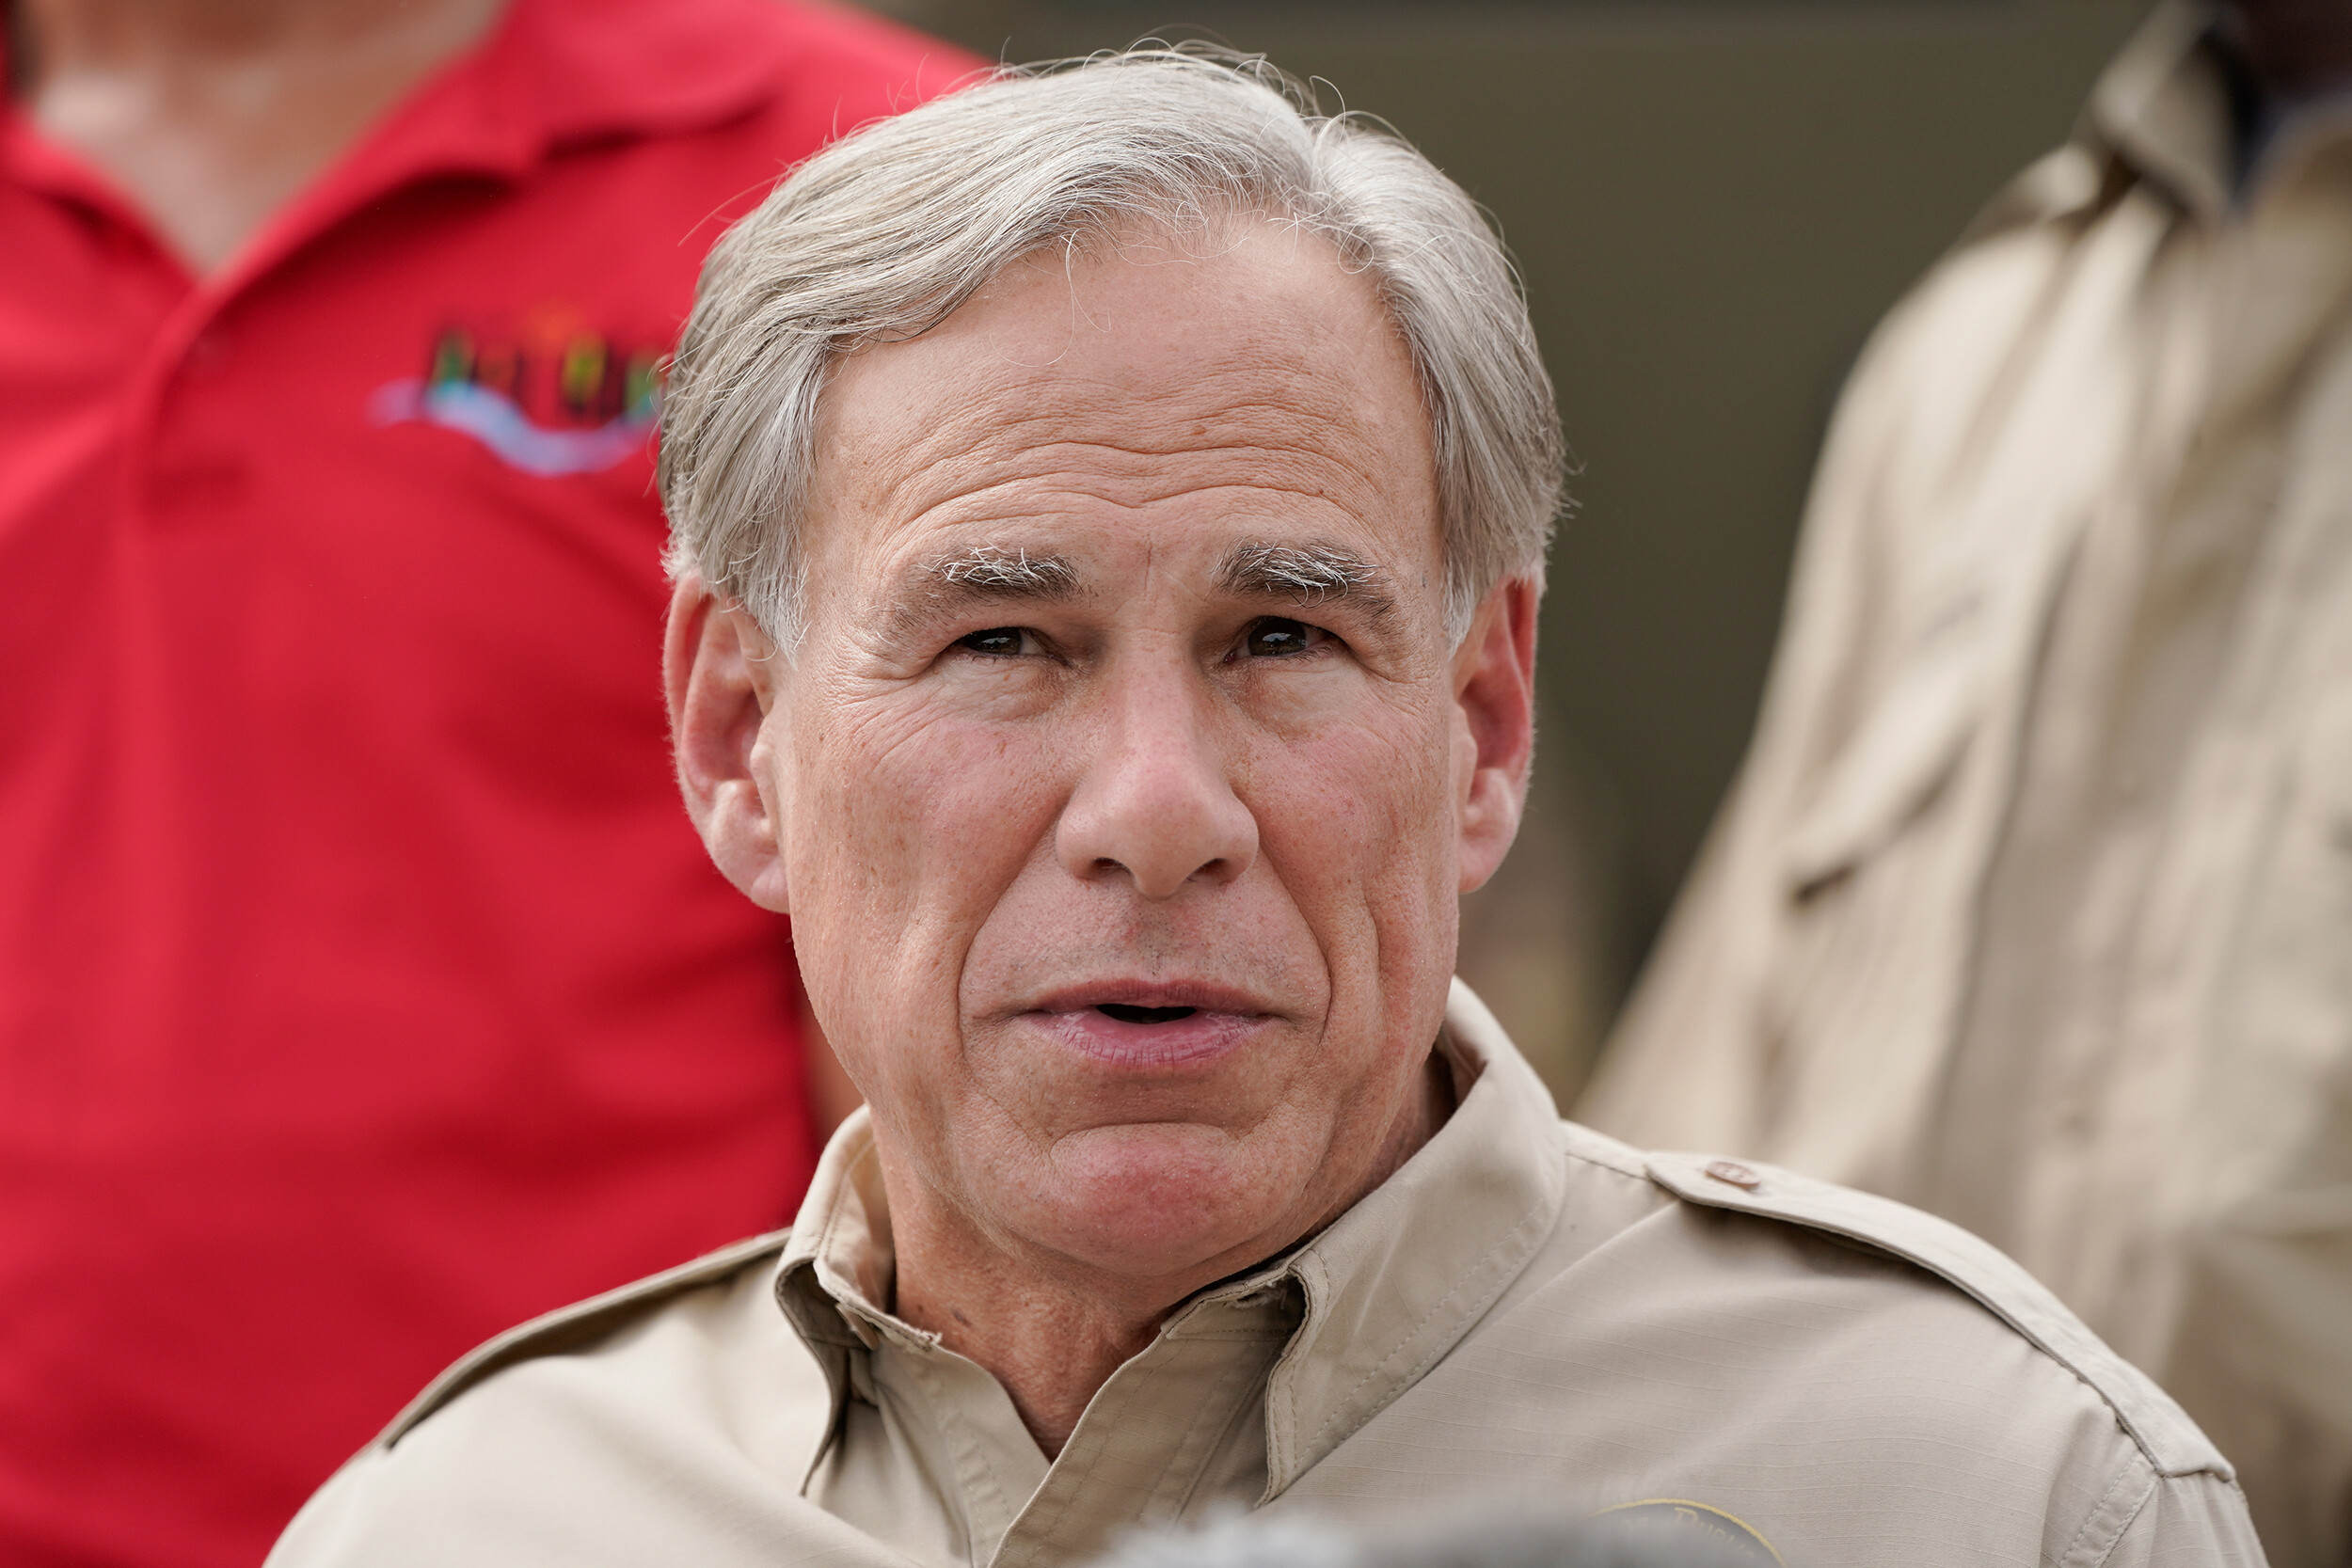 Texas governor bans Covid-19 vaccine mandates by any employer in state